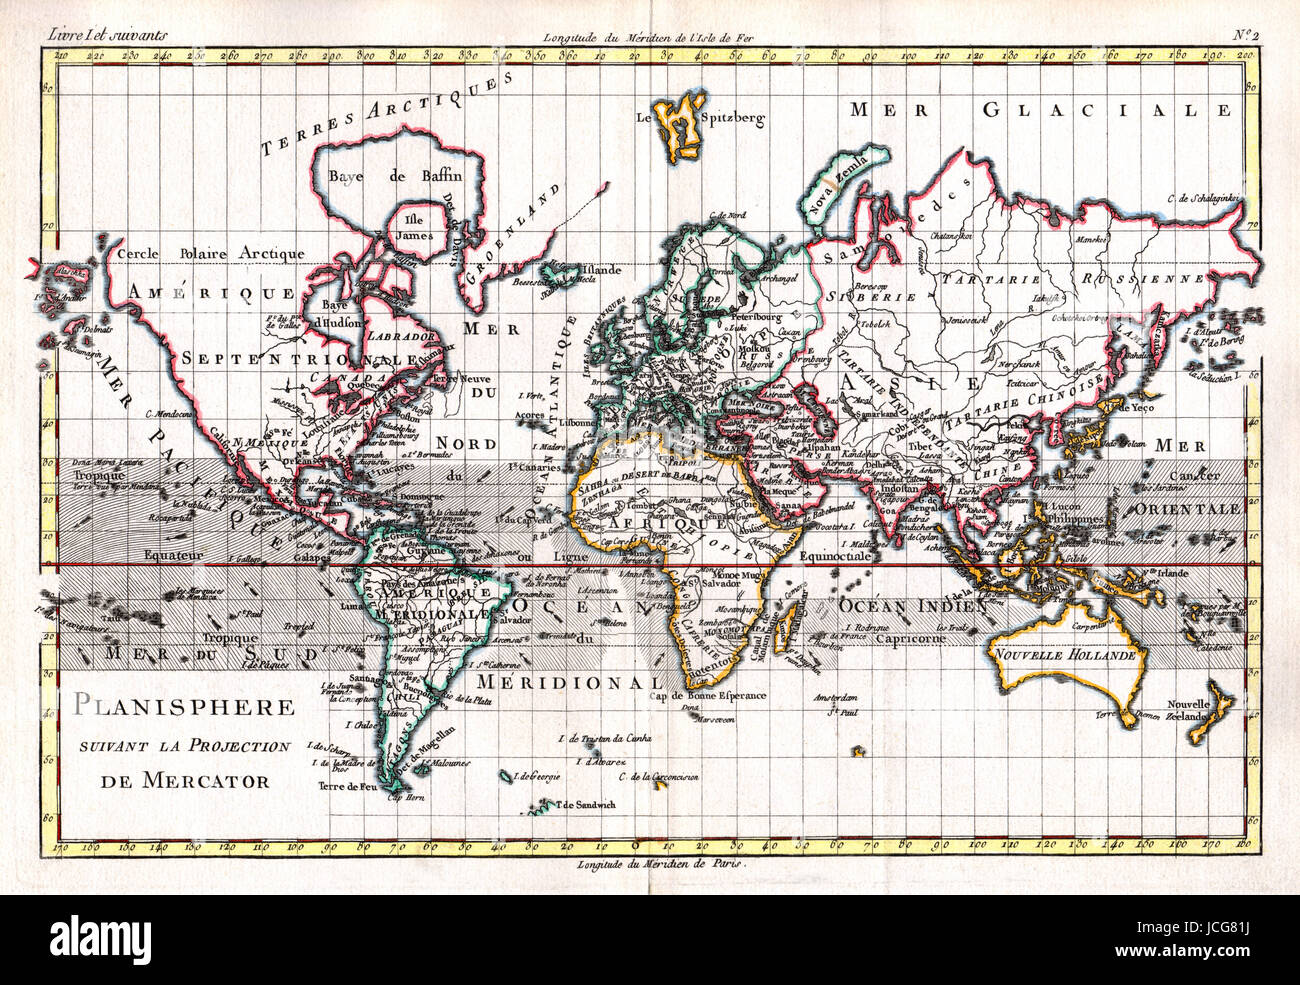 1779 Bonne Map of the World on Mercator's Projection, an example of French Cartography, hand colored. - Stock Image